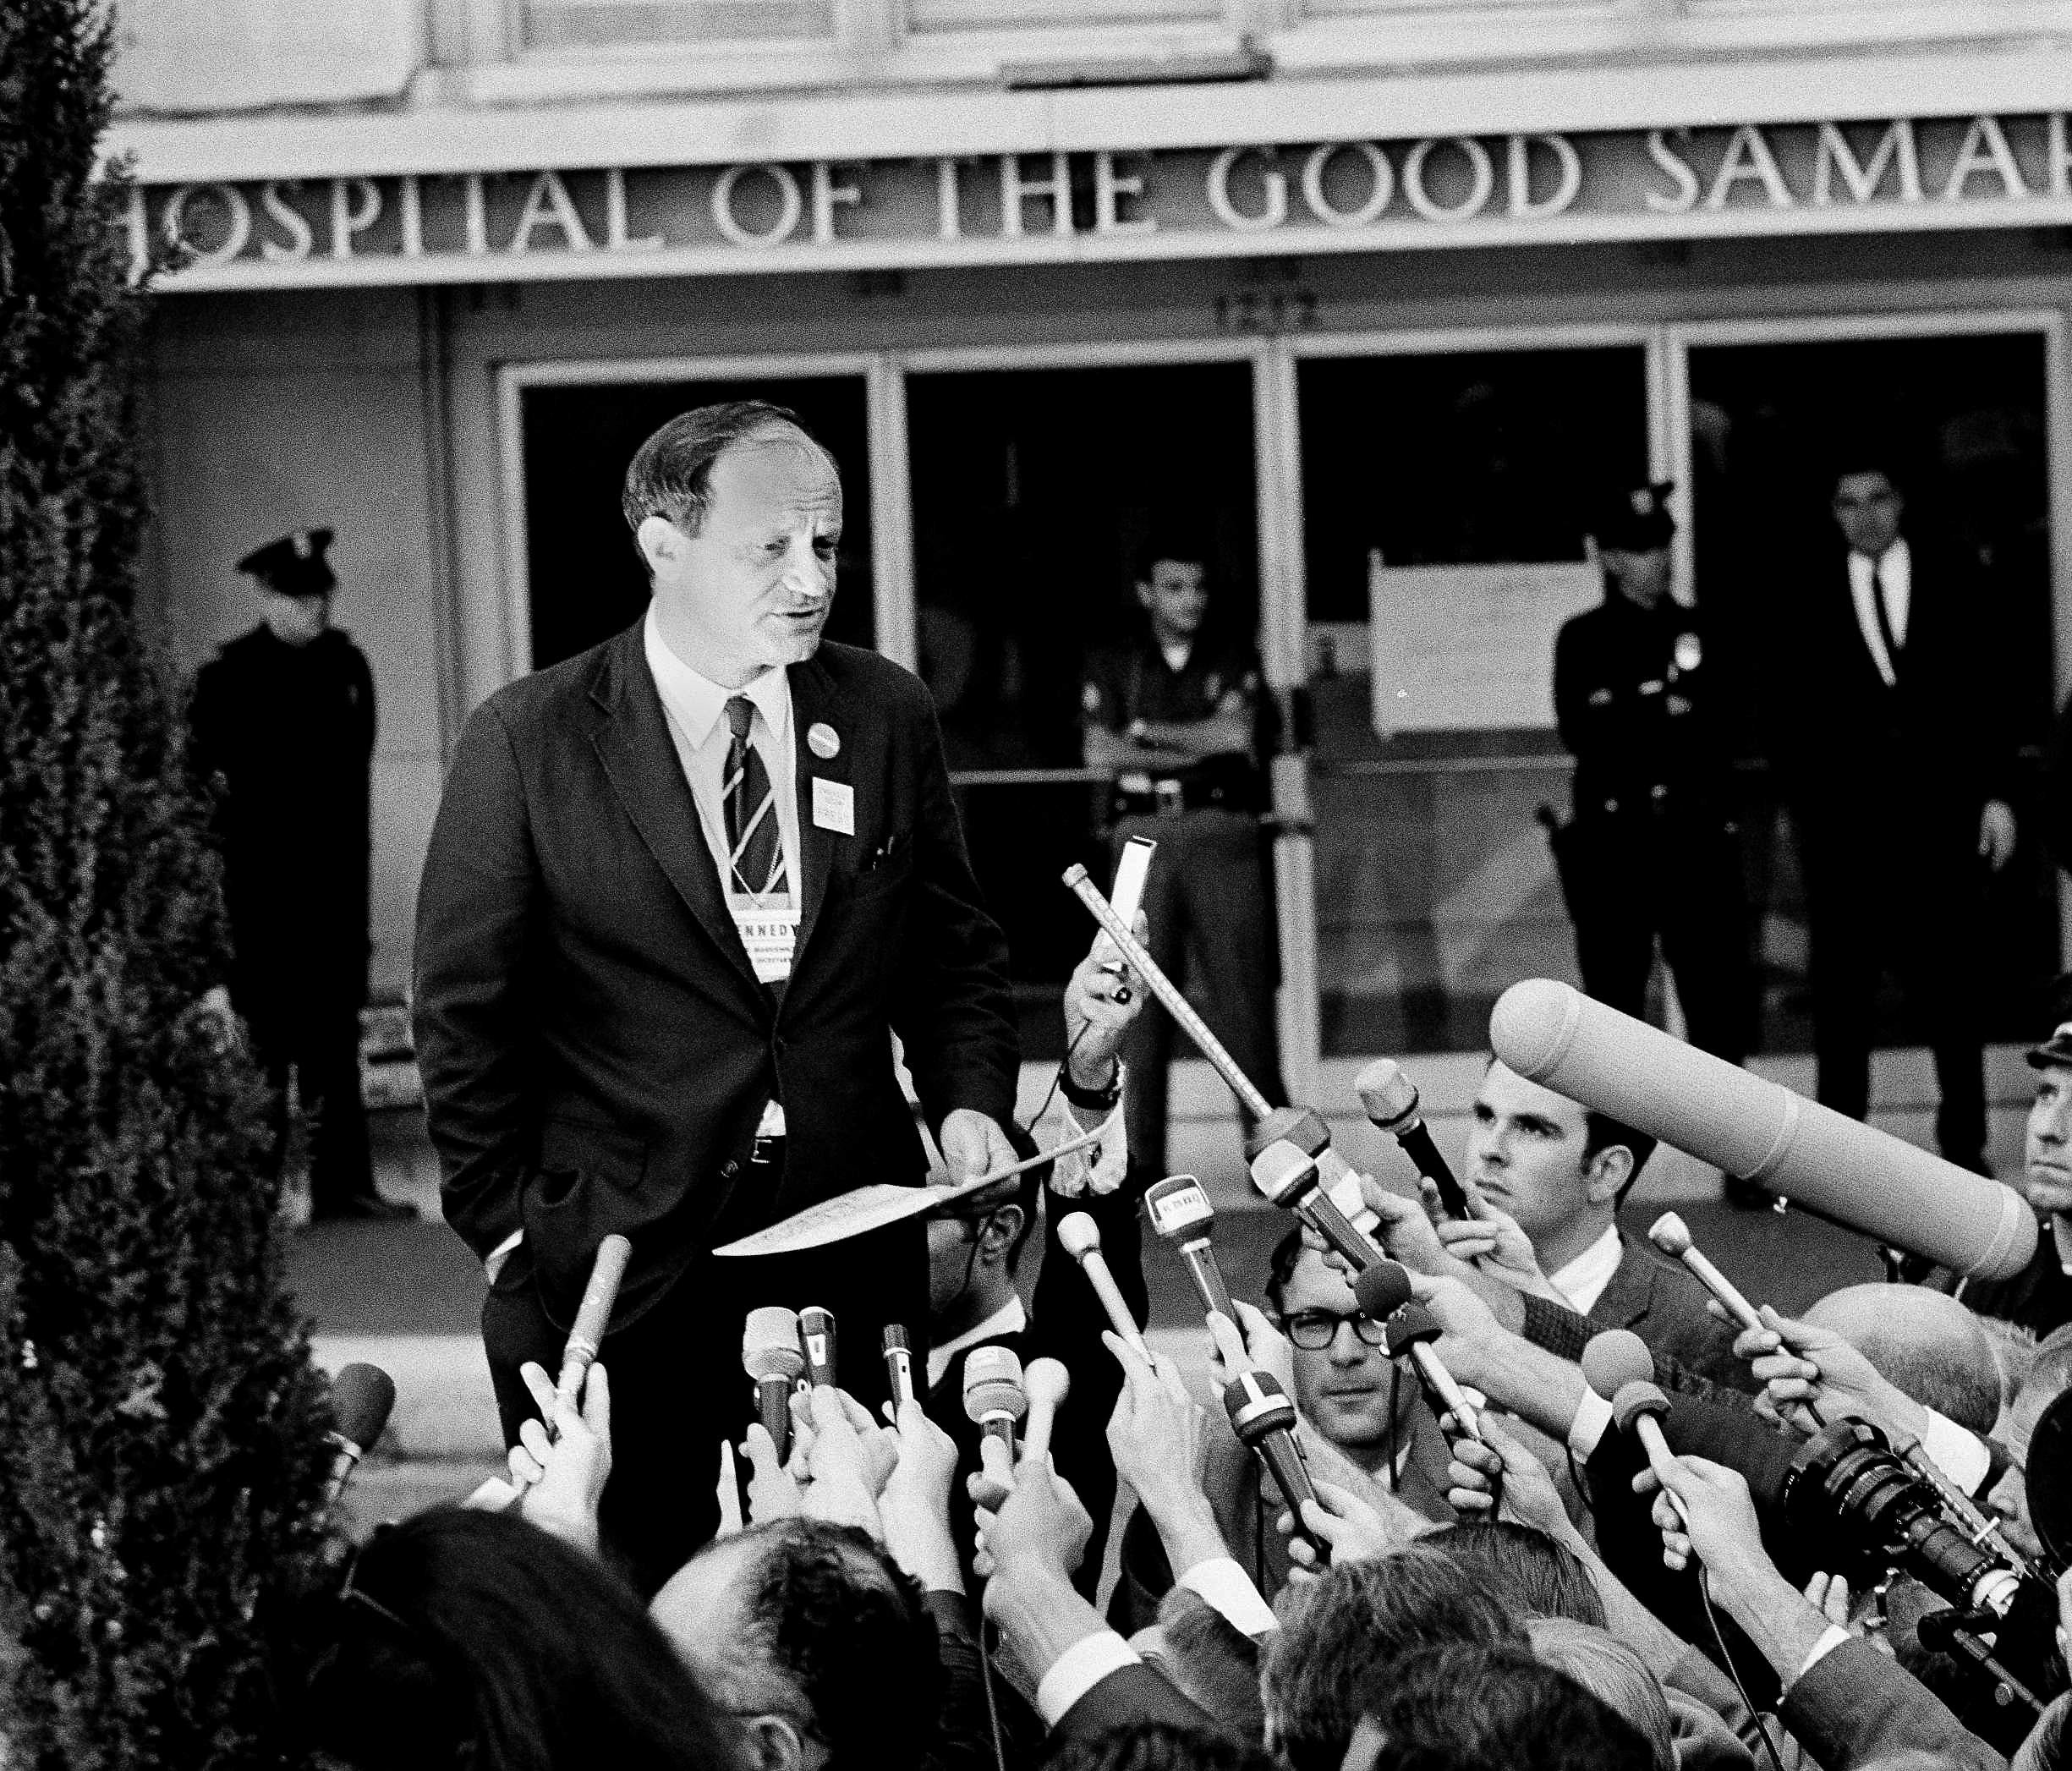 Frank Mankiewicz, press secretary for Robert Kennedy, speaks during news conference outside Good Samaritan hospital in Los Angeles on June 5, 1968. Mankiewicz told journalists that Kennedy emerged from three hours of surgery in